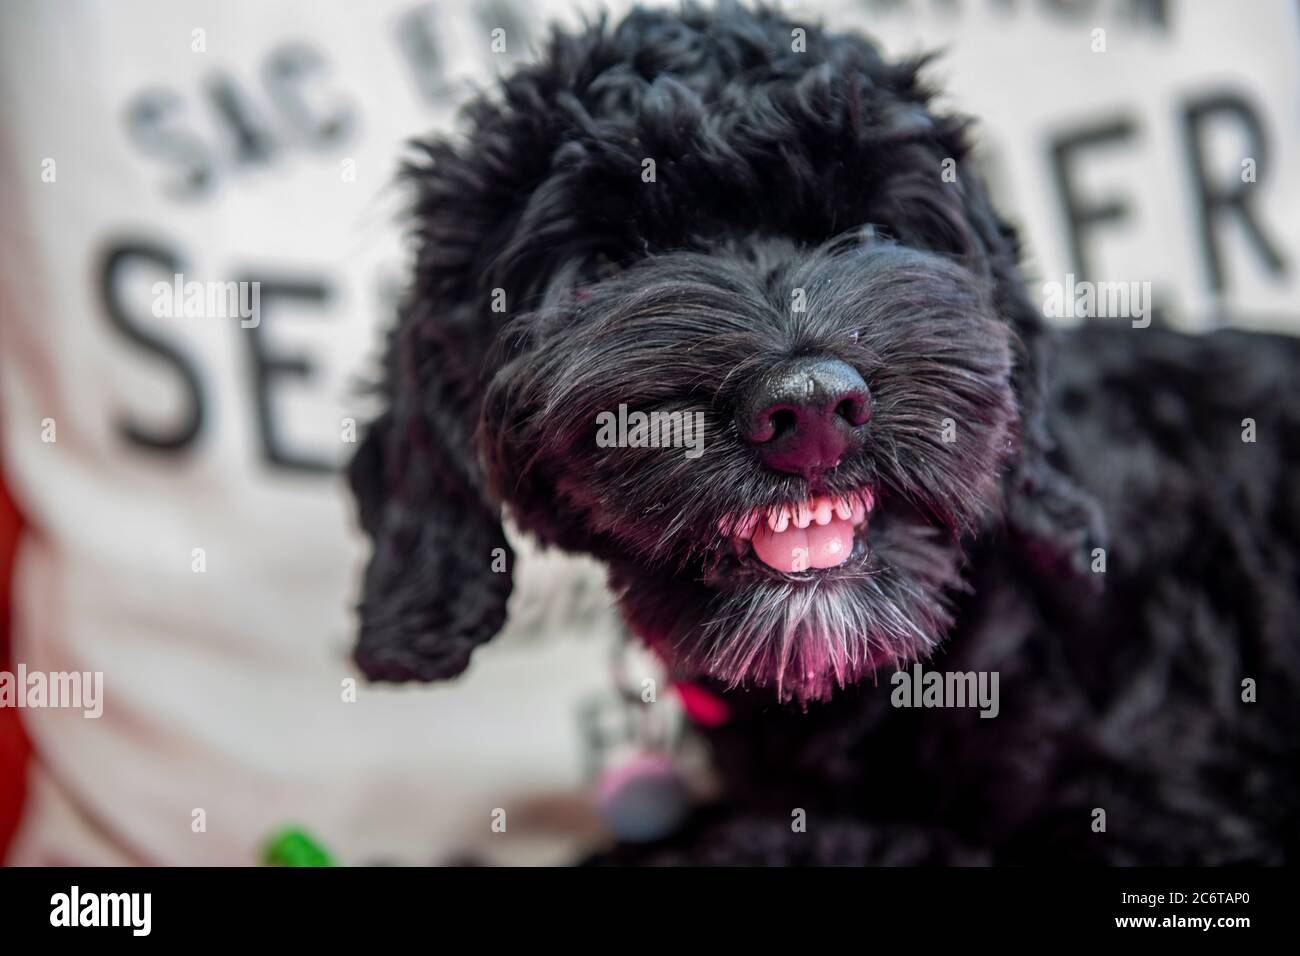 A Young Cockapoo Puppy Shows Substantial Aggression When Protecting A Toy Stock Photo Alamy